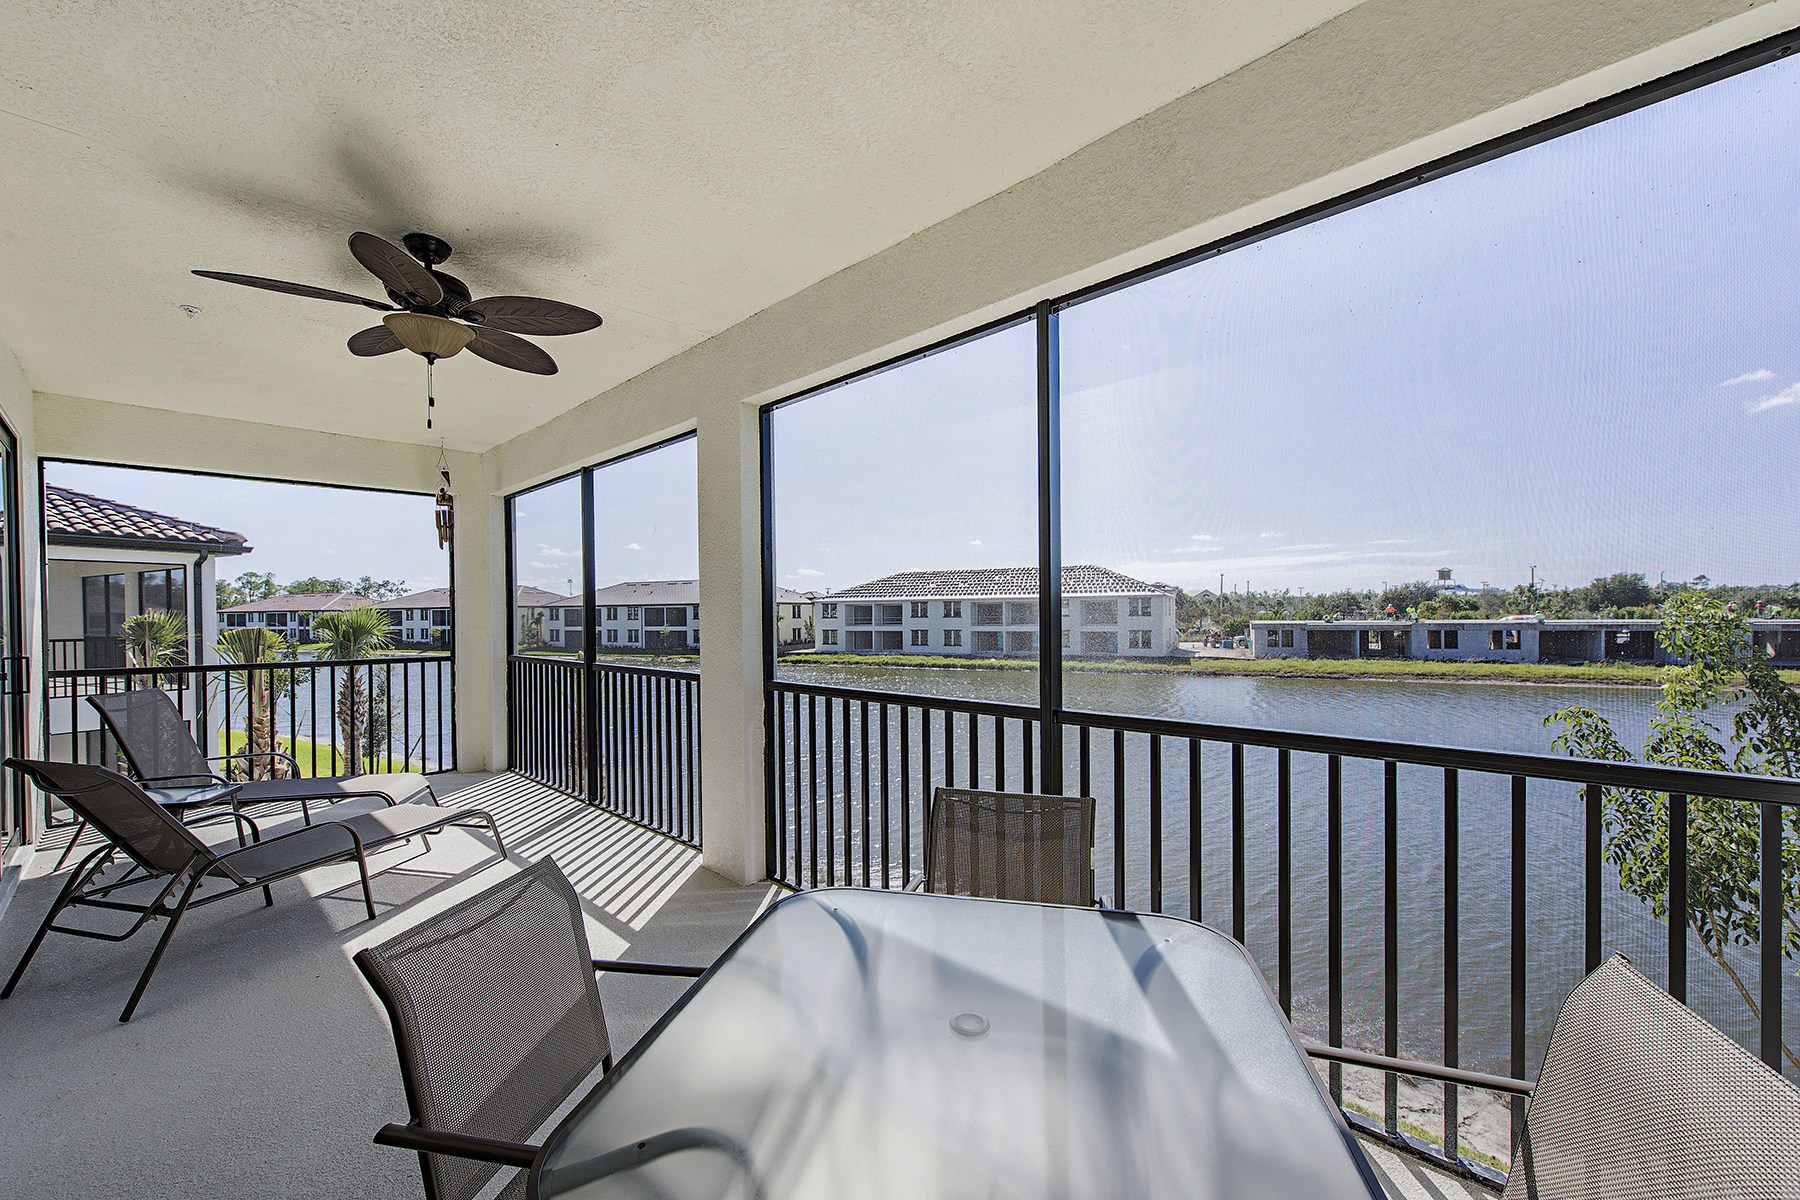 Condominium for Rent at LIVINGSTON LAKES - COACH HOMES 15152 Palmer Lake Cir 24-201, Naples, Florida 34109 United States